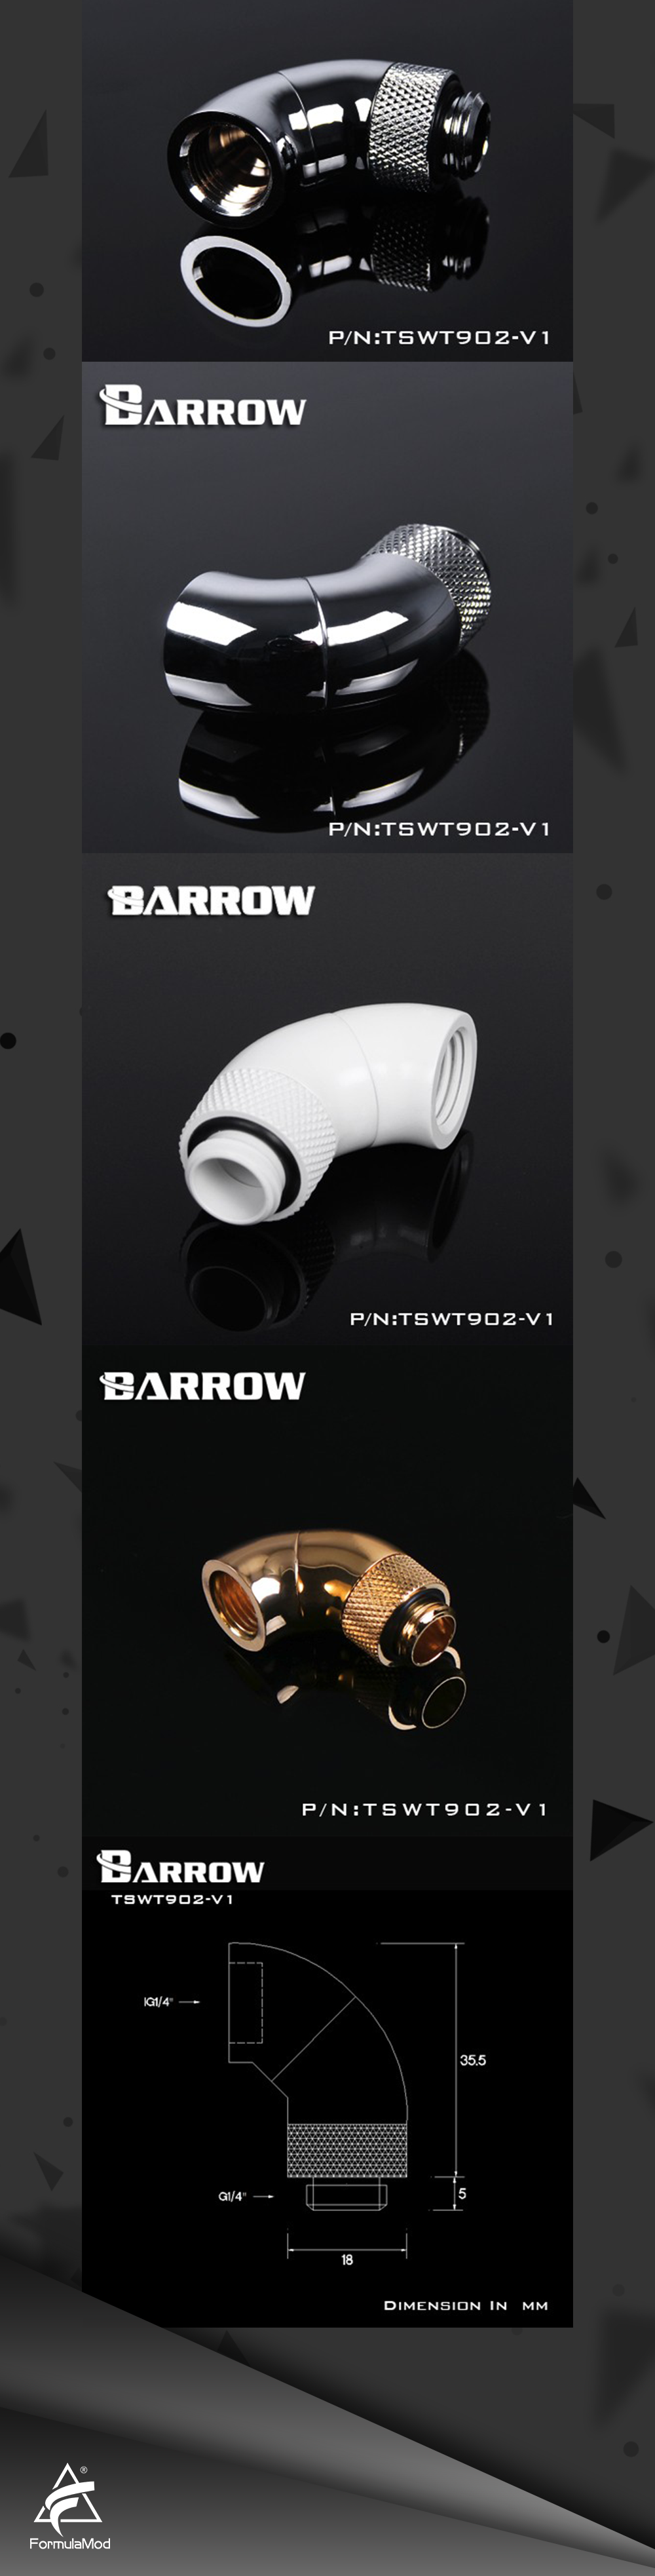 """Barrow G1/4"""" White Black Silver Dual Rotary 90-Degree 360 degree rotatable IG1/4"""" Extender water cooling fittings TSWT902-V1"""